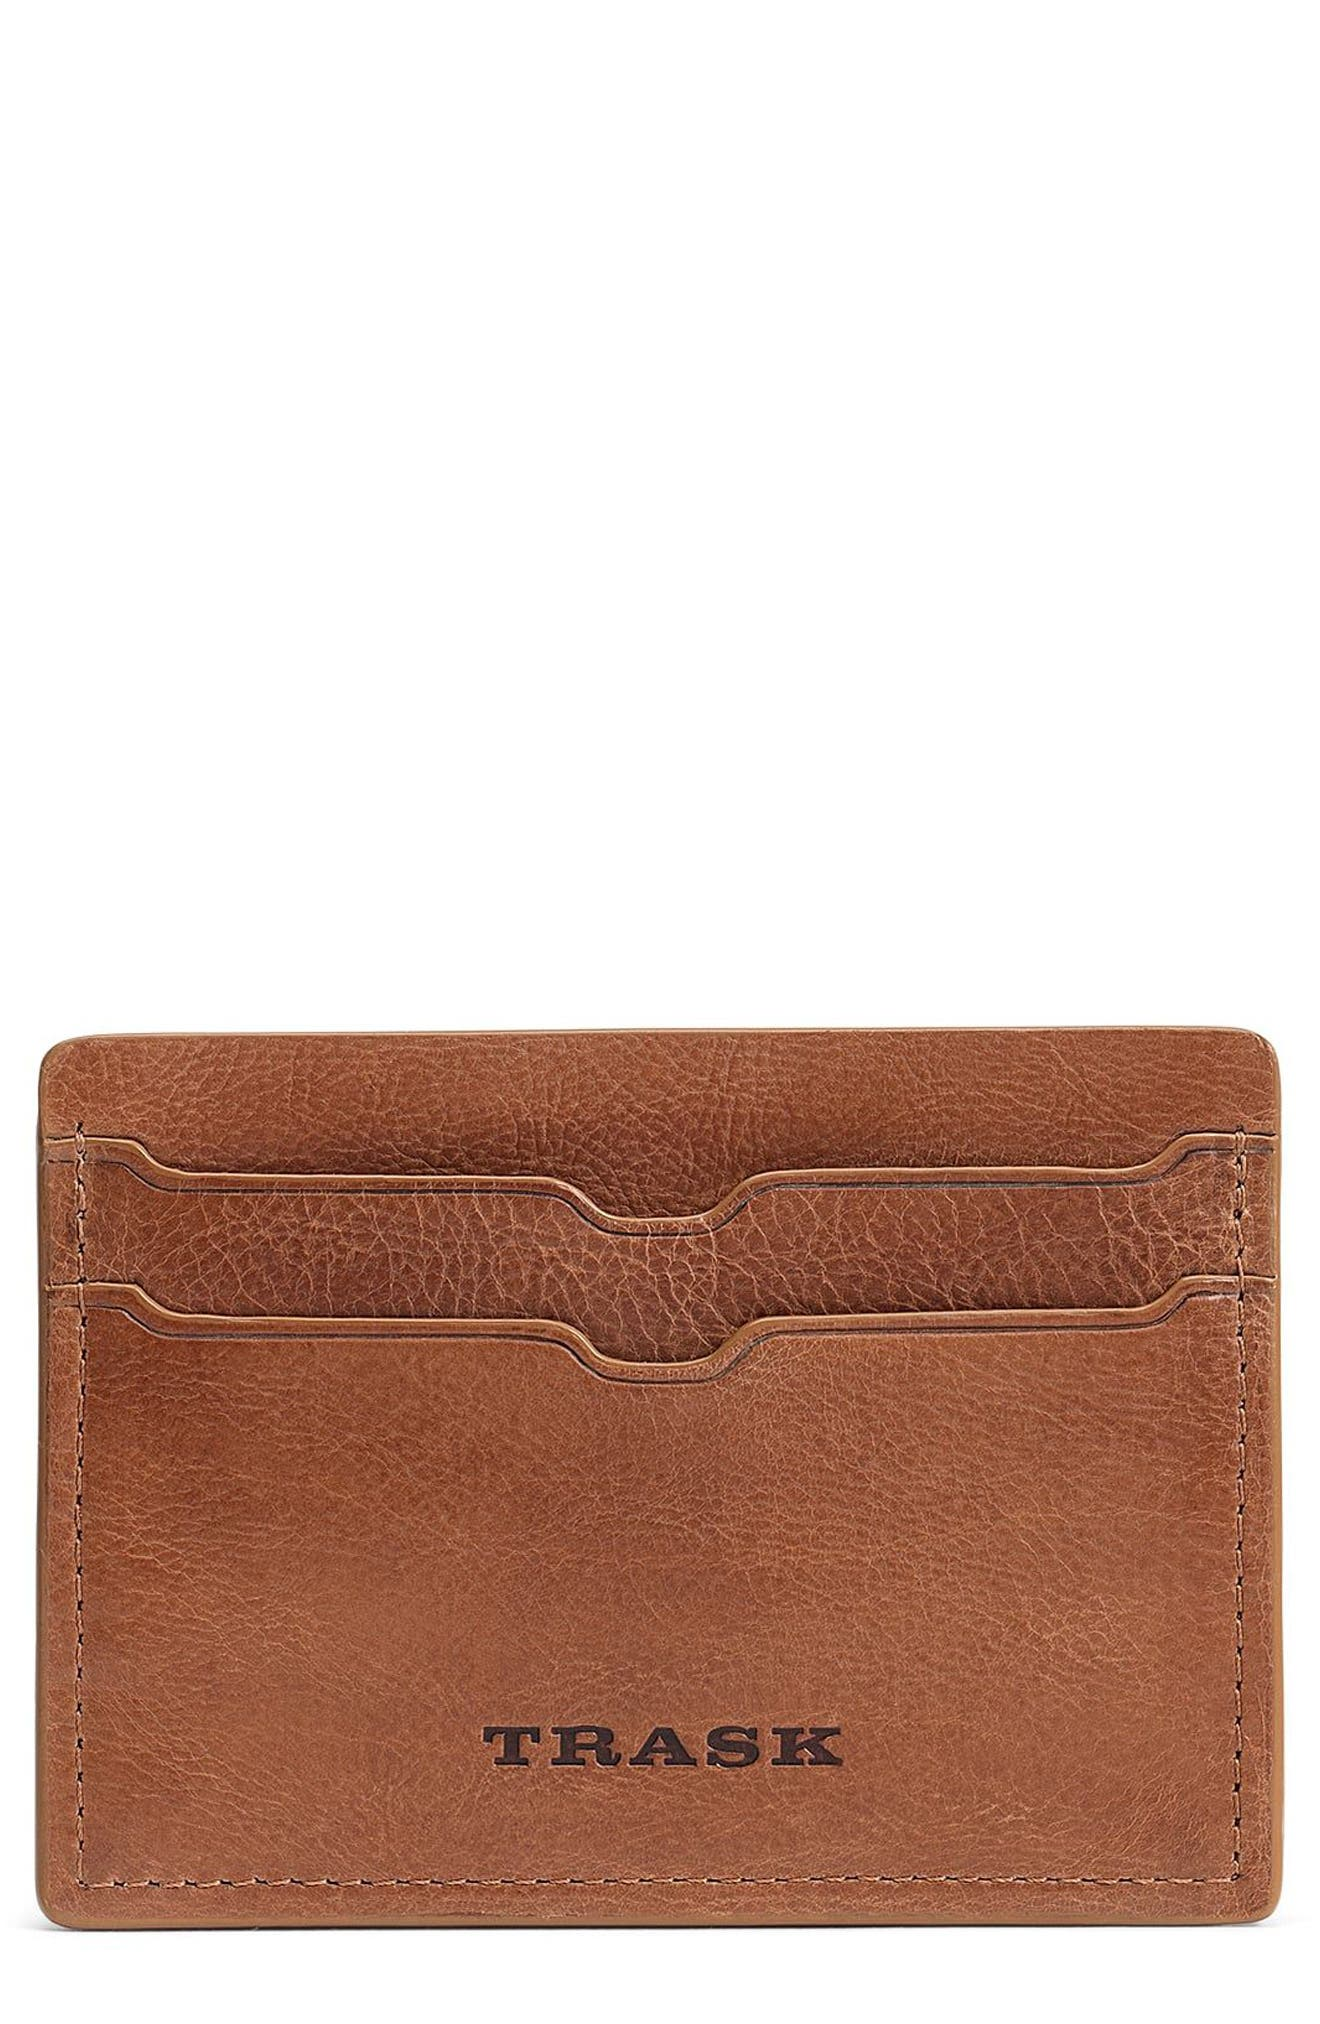 Canyon Leather Card Case,                         Main,                         color, Tan